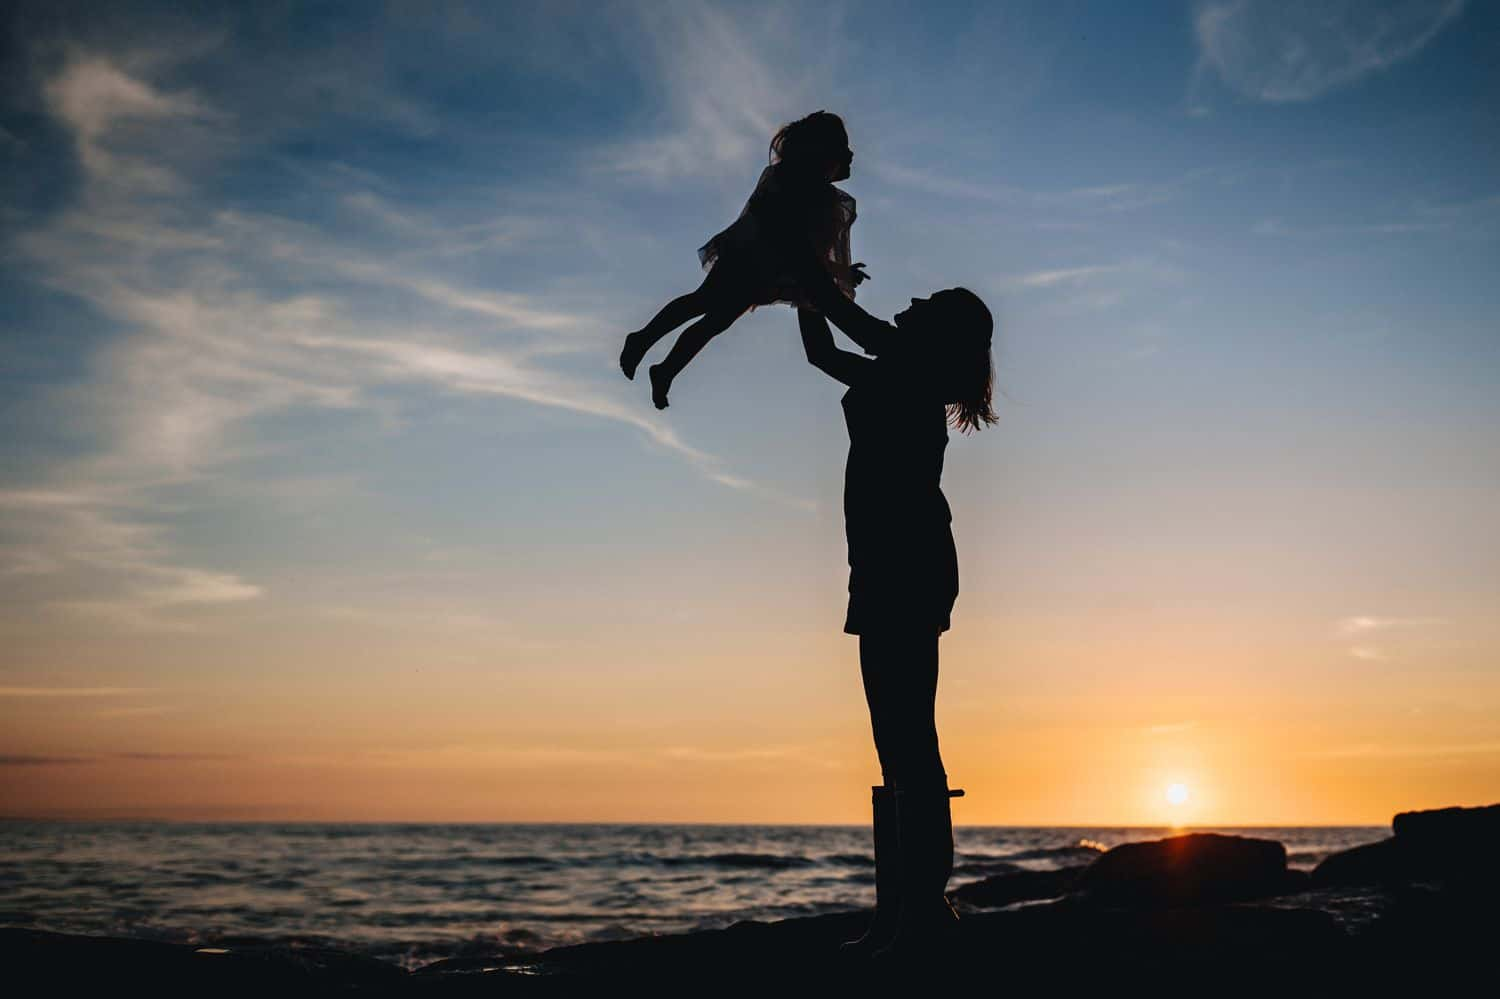 A silhouette of a woman as she lifts her child into the air at sunset on a beach.